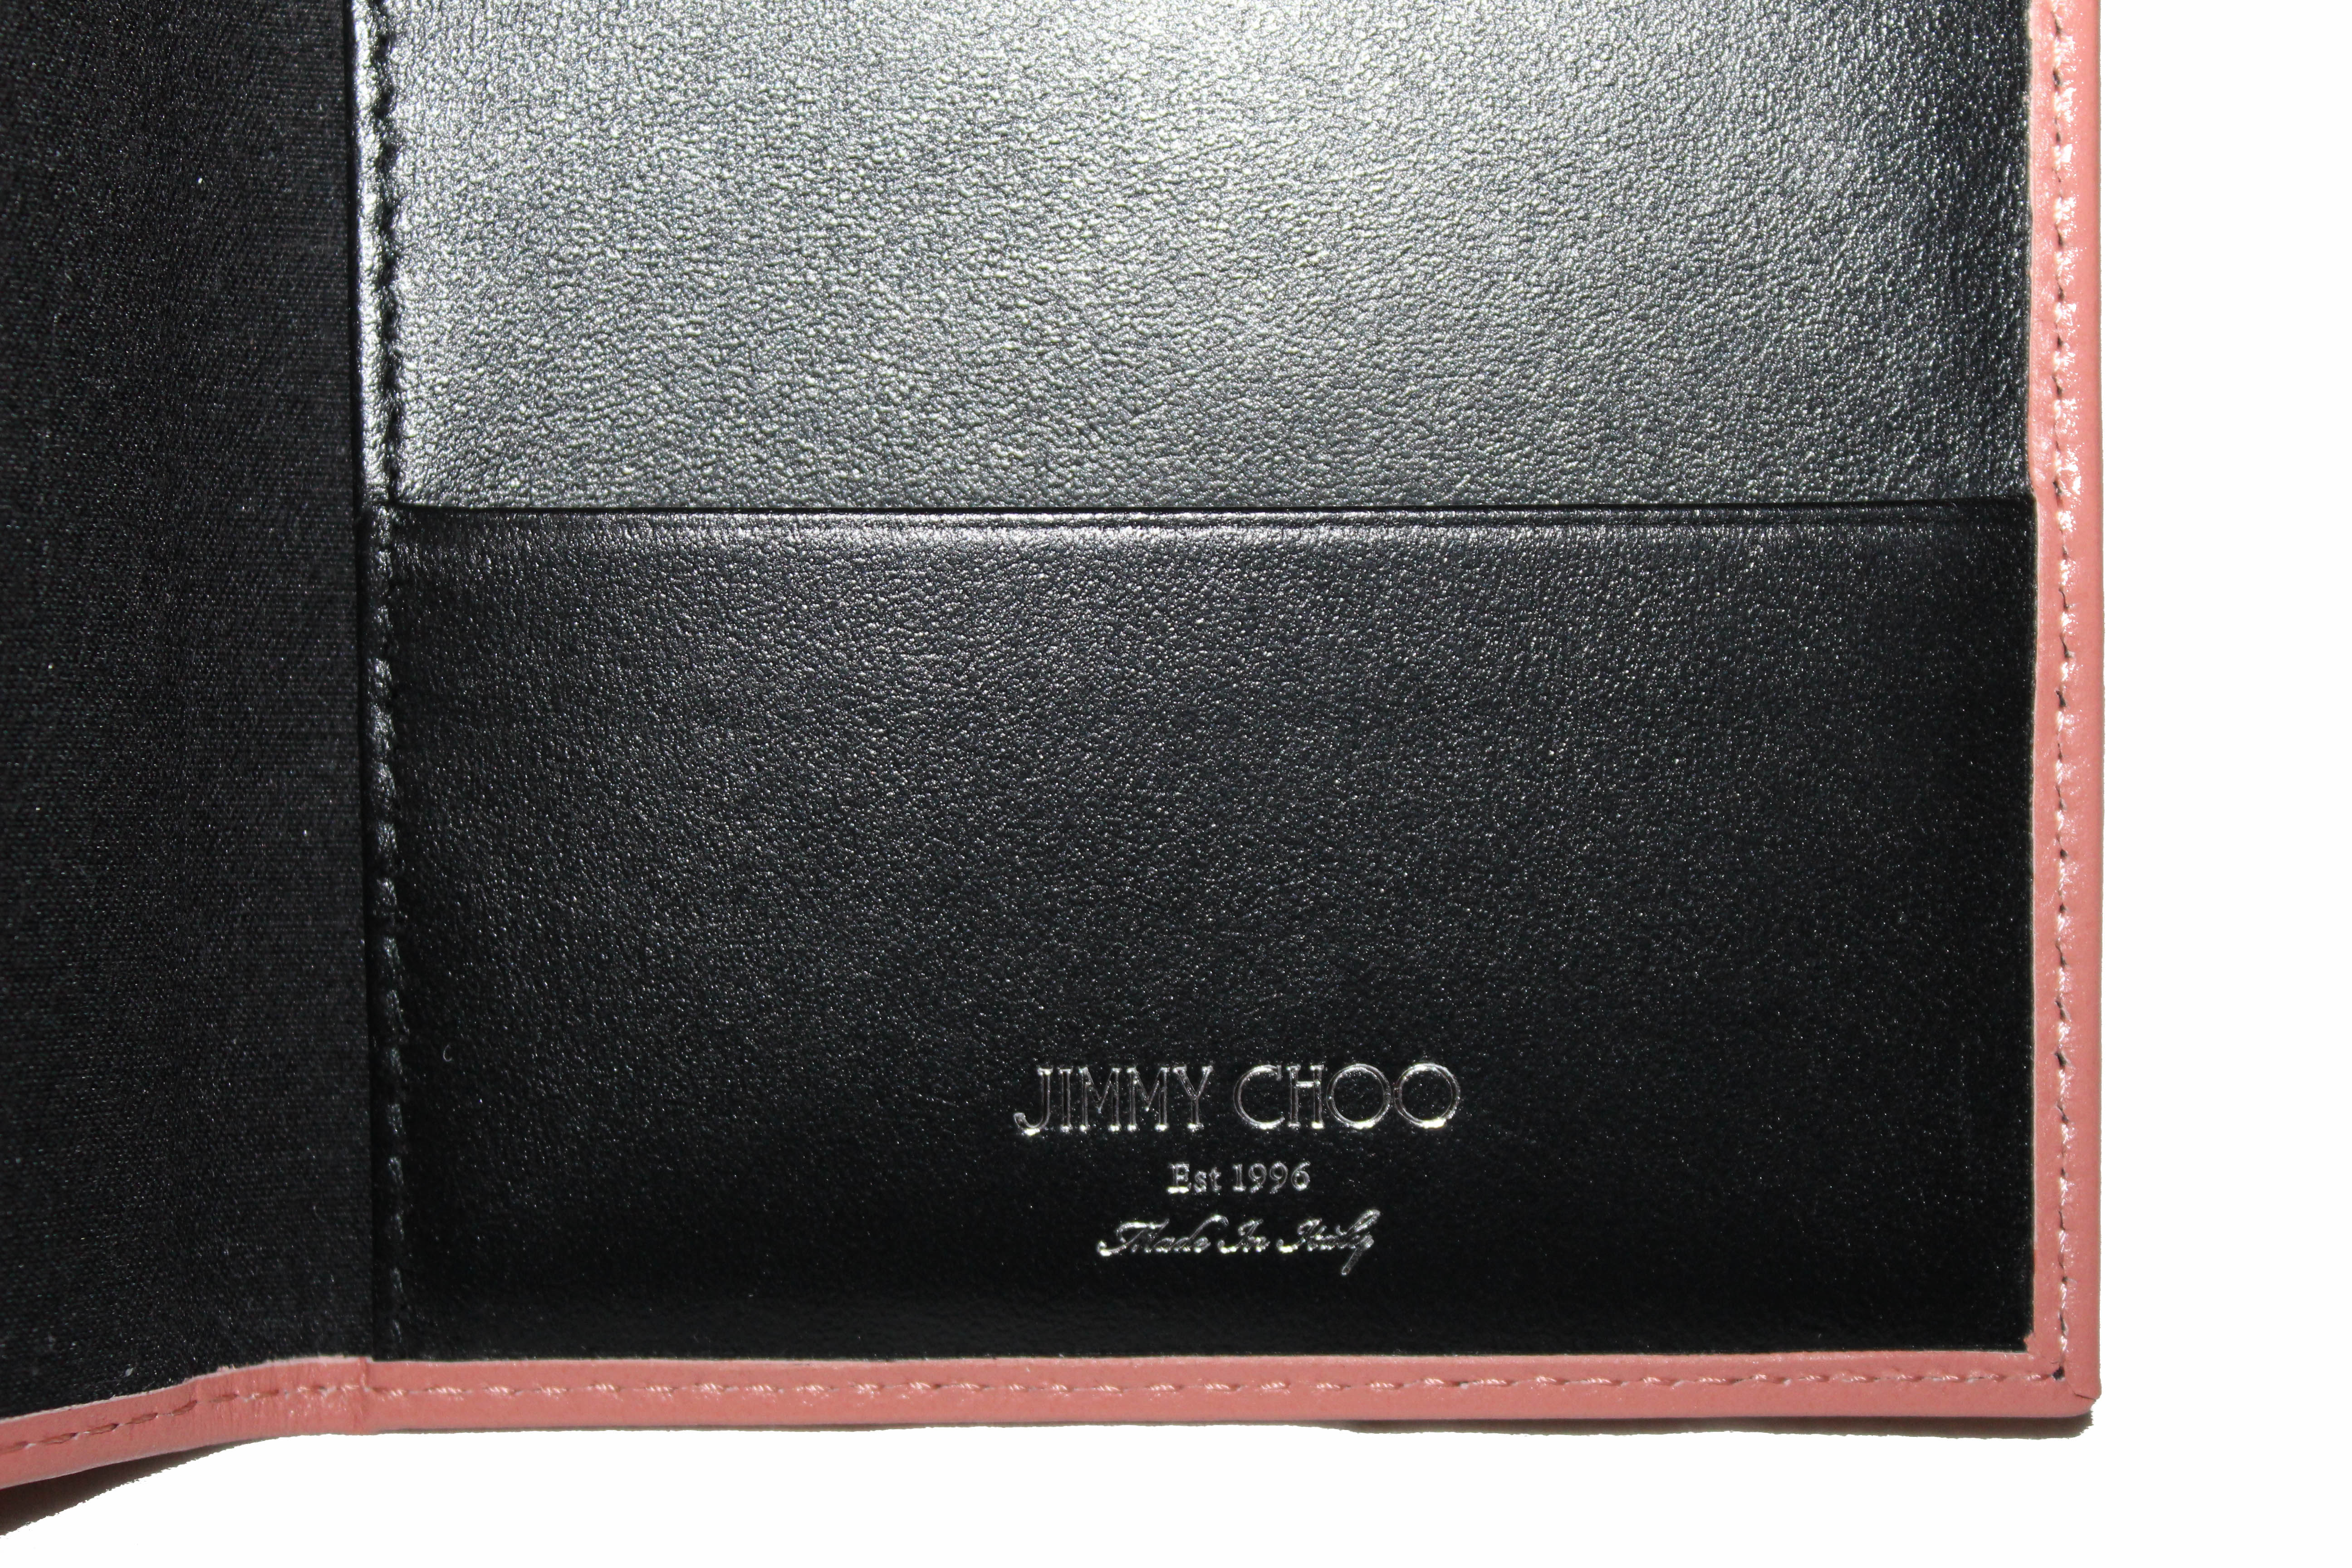 Authentic New Jimmy Choo Pink Leather Passport Holder